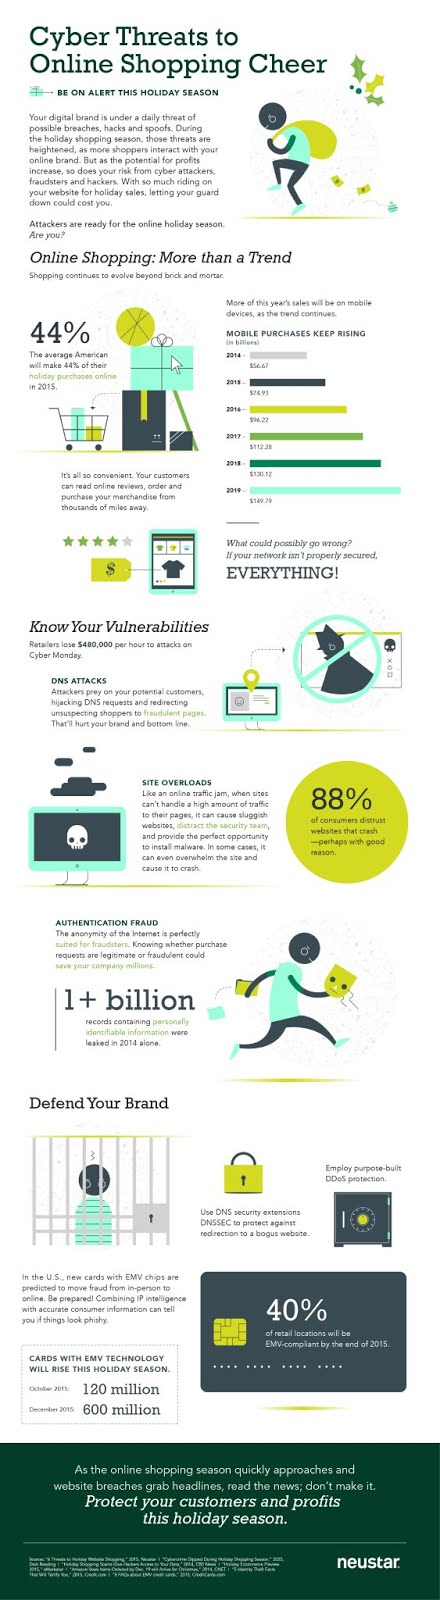 Cyber threats to online shopping cheer